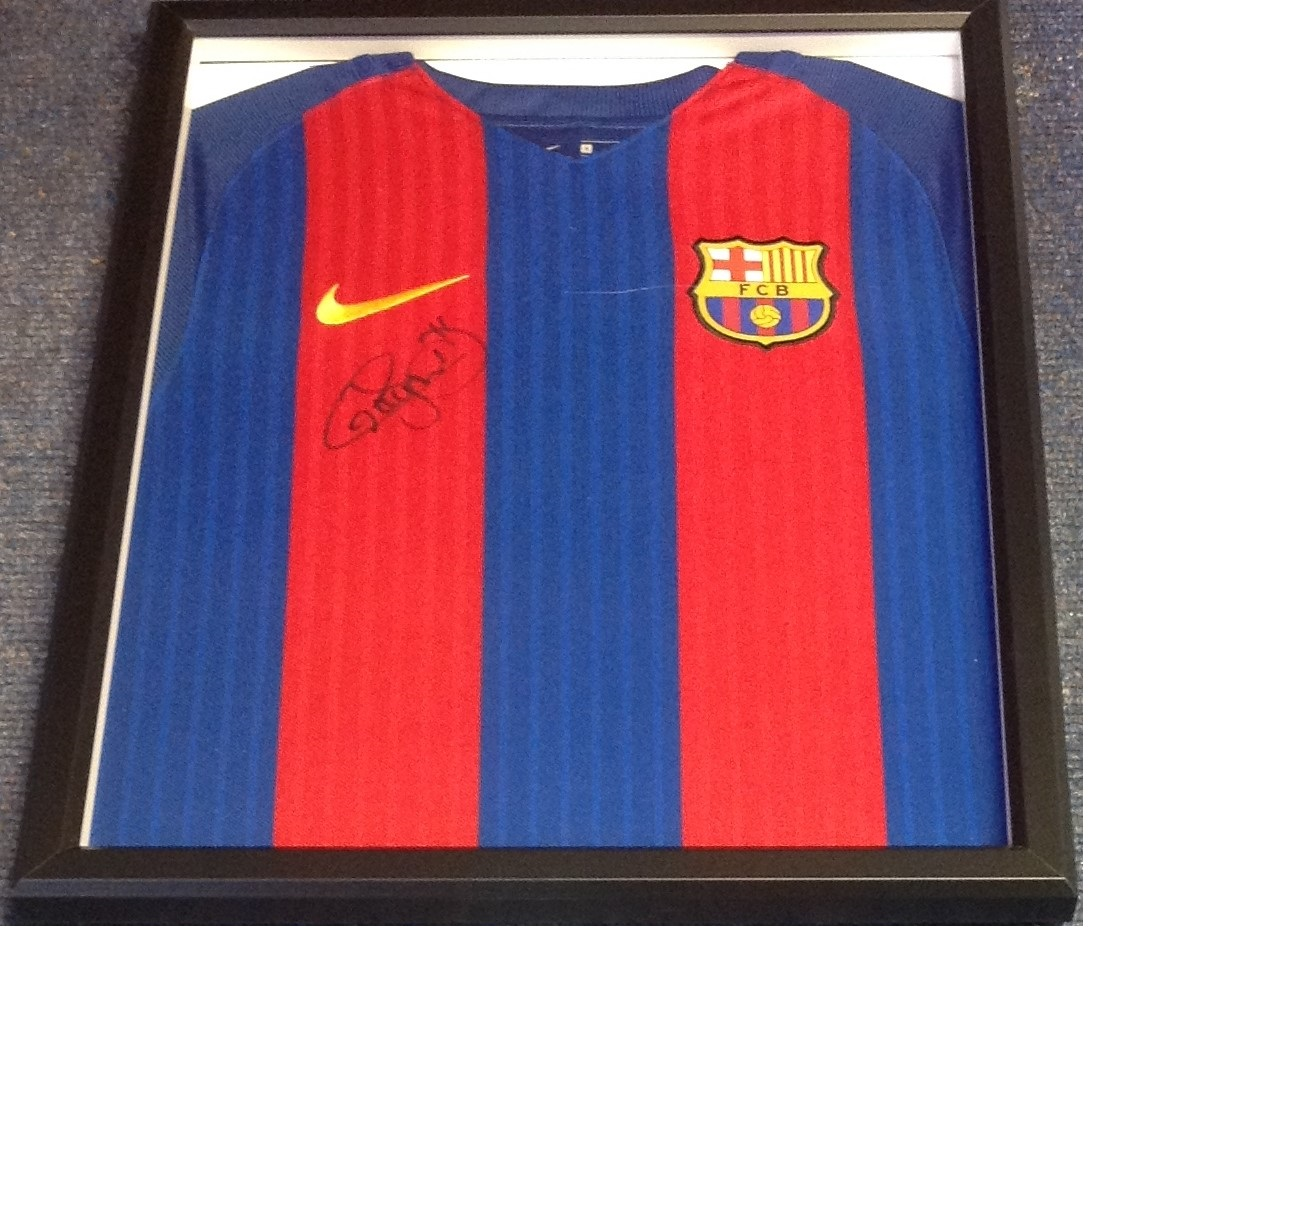 Lot 26 - Football Neymar JR 21x17 overall framed and mounted Barcelona shirt. Neymar da Silva Santos